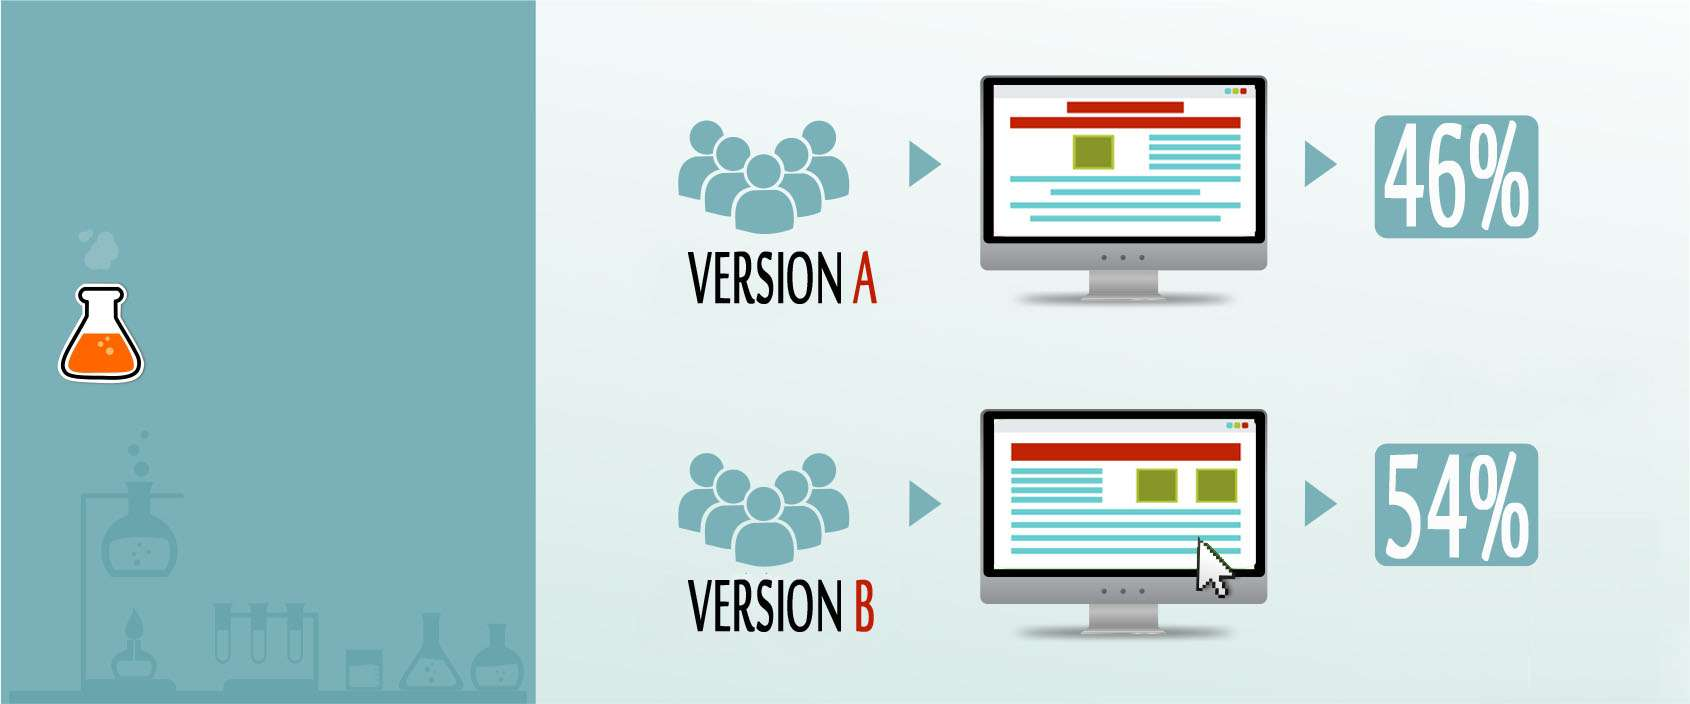 How To Maximize Impact Of Inbound Marketing Strategies Through A / B Testing